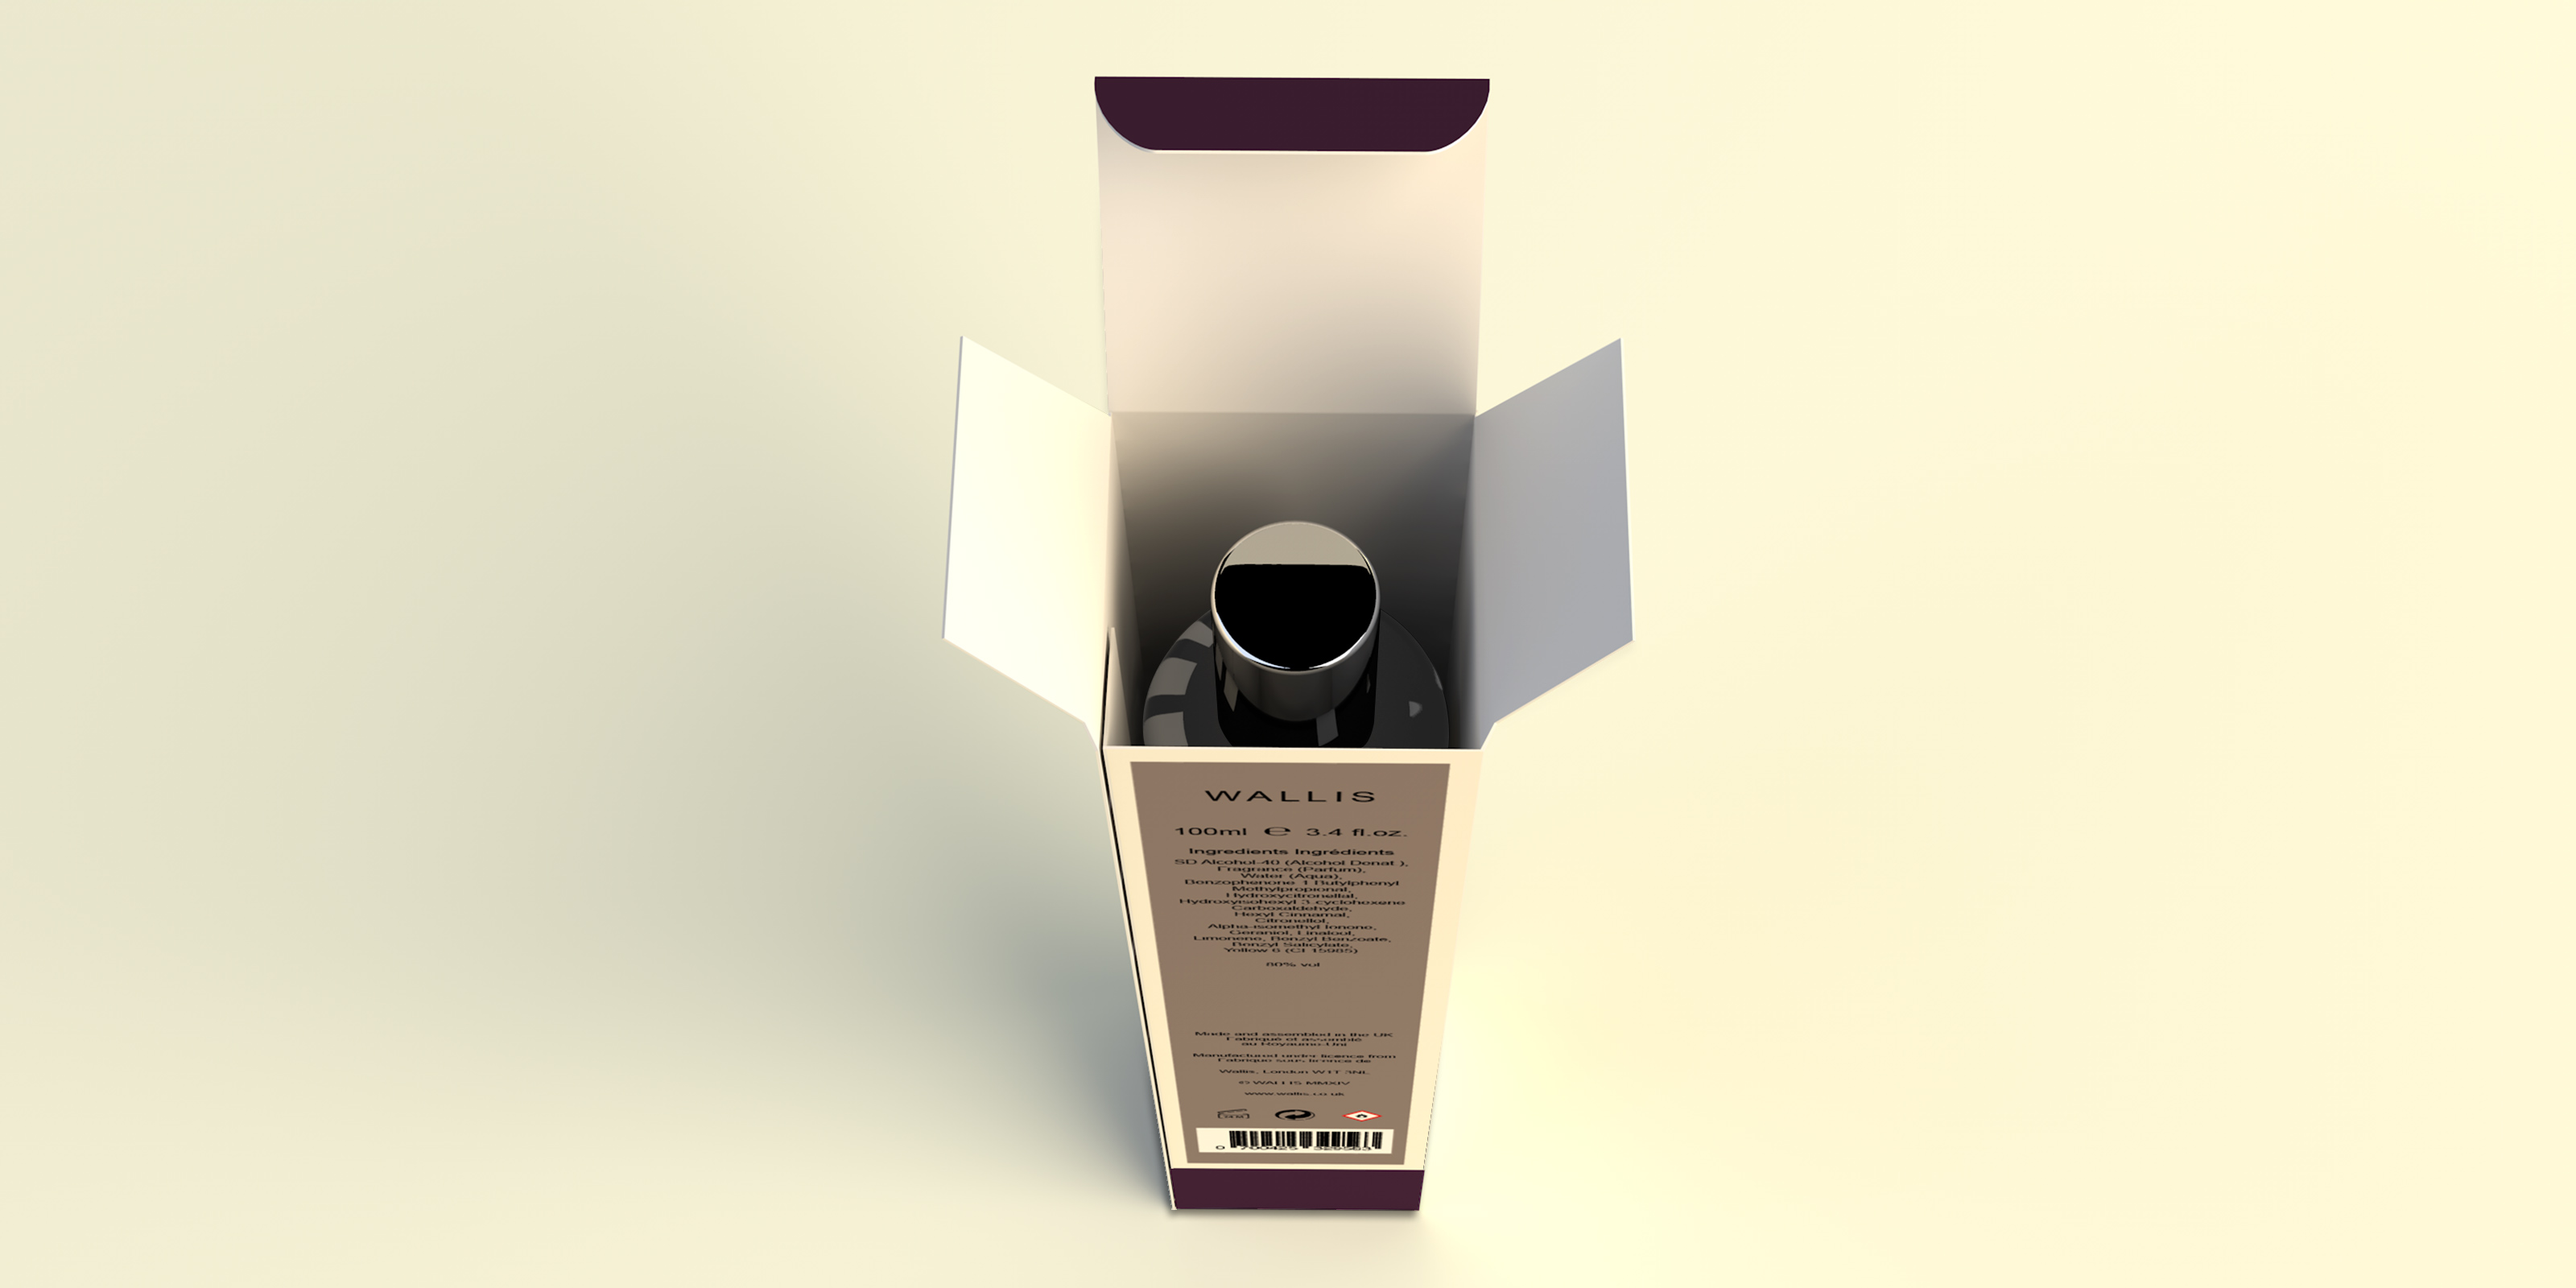 Wallis Noir Room Spray Carton